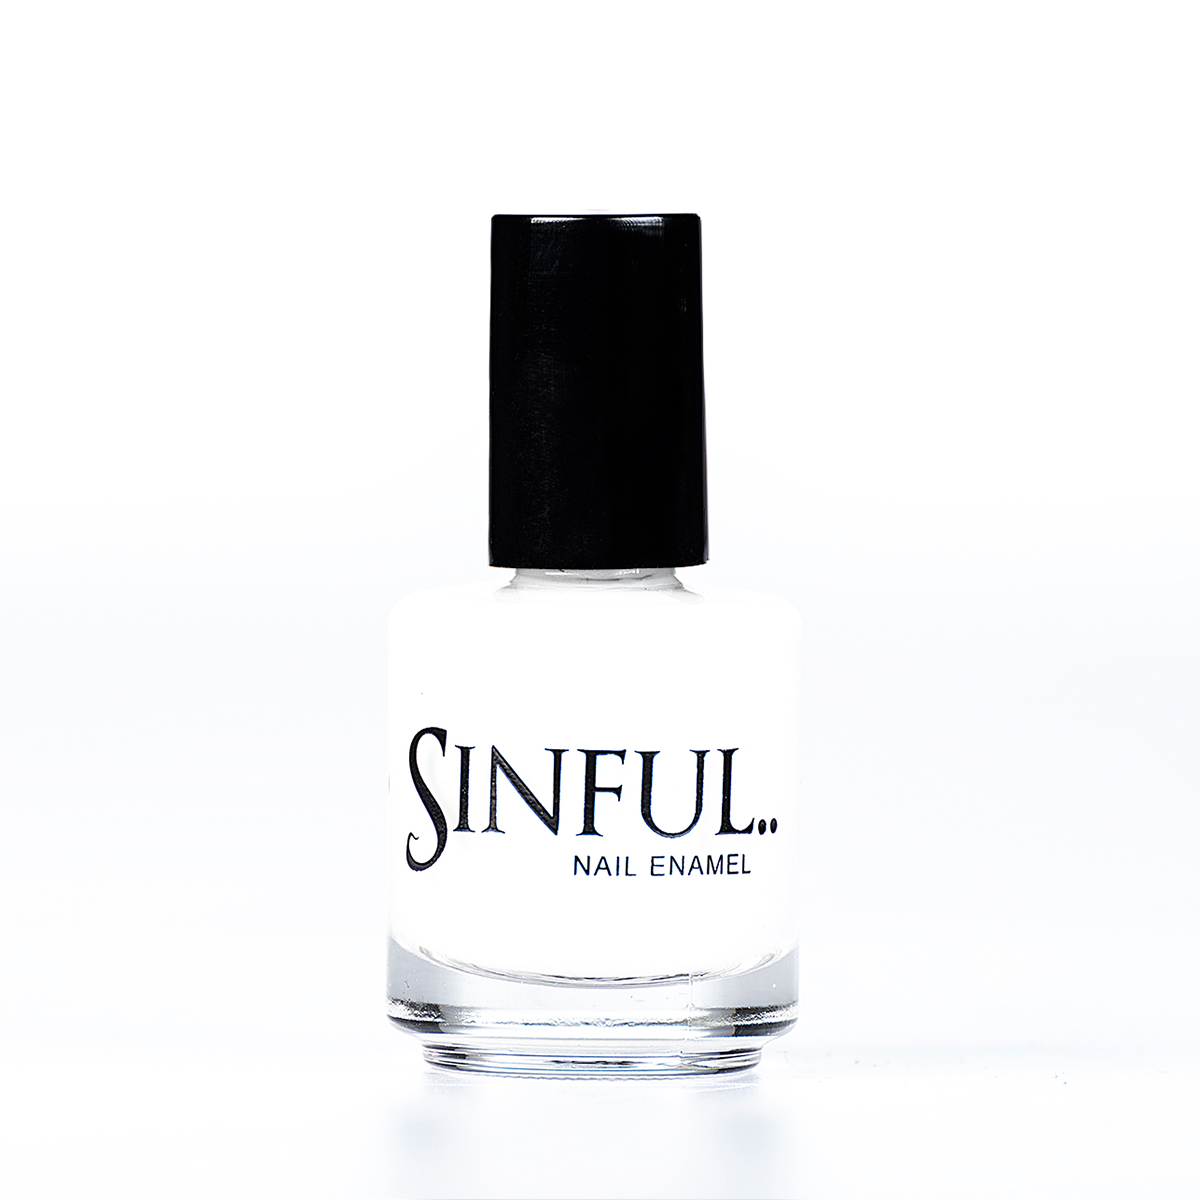 Confession Bright solid white - recommended for French Manicure. Sinful always recommends applying two coats of polish to give a solid colour, then applying top coat to extend the wear-time of the polish. 15ml